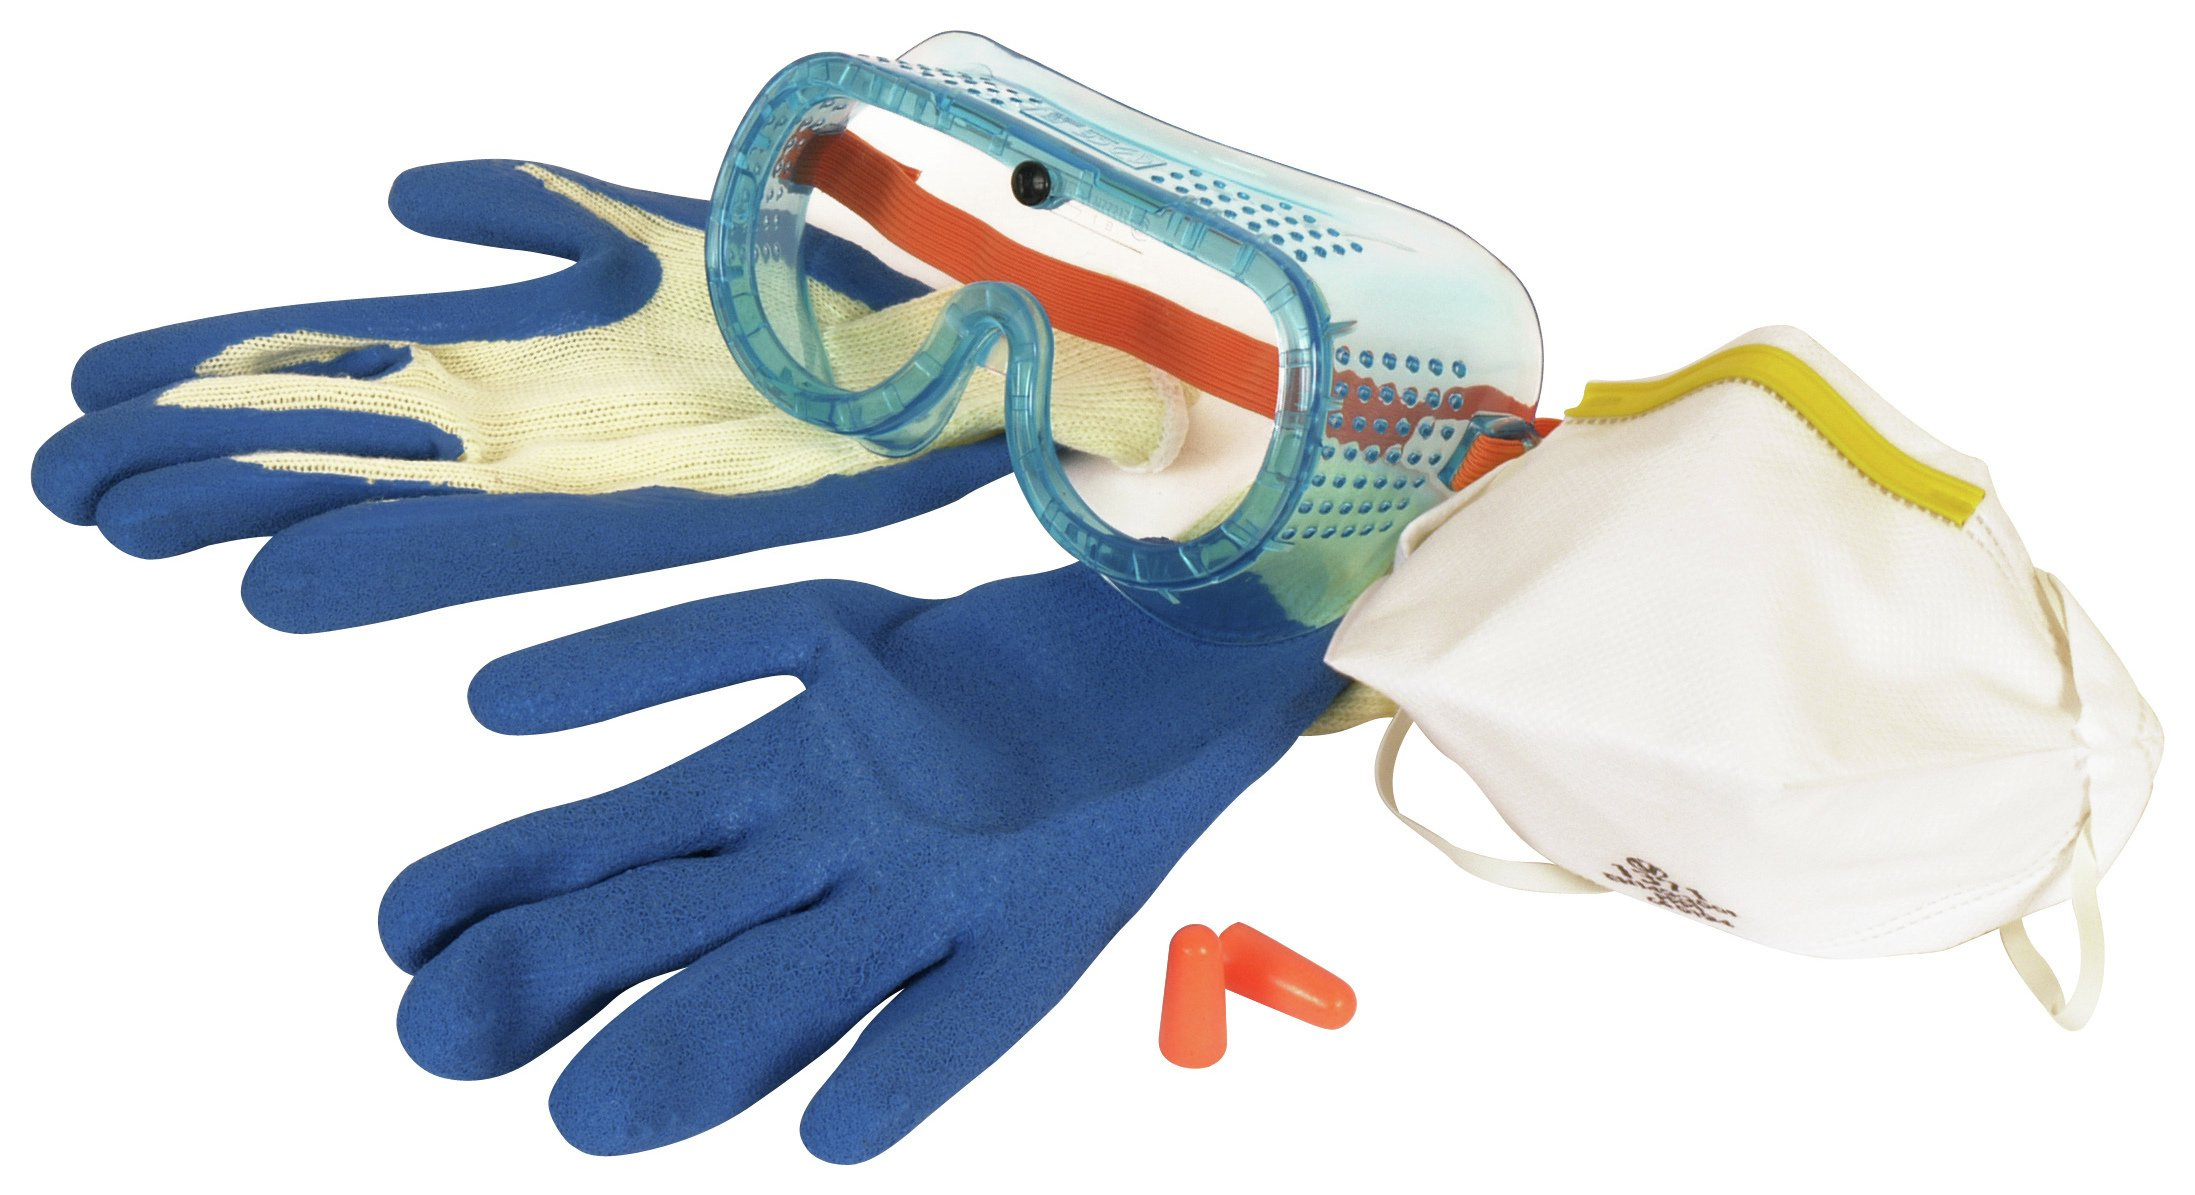 Vitrex Respirator,Goggles, Gloves and Ear Plugs Safety Kit